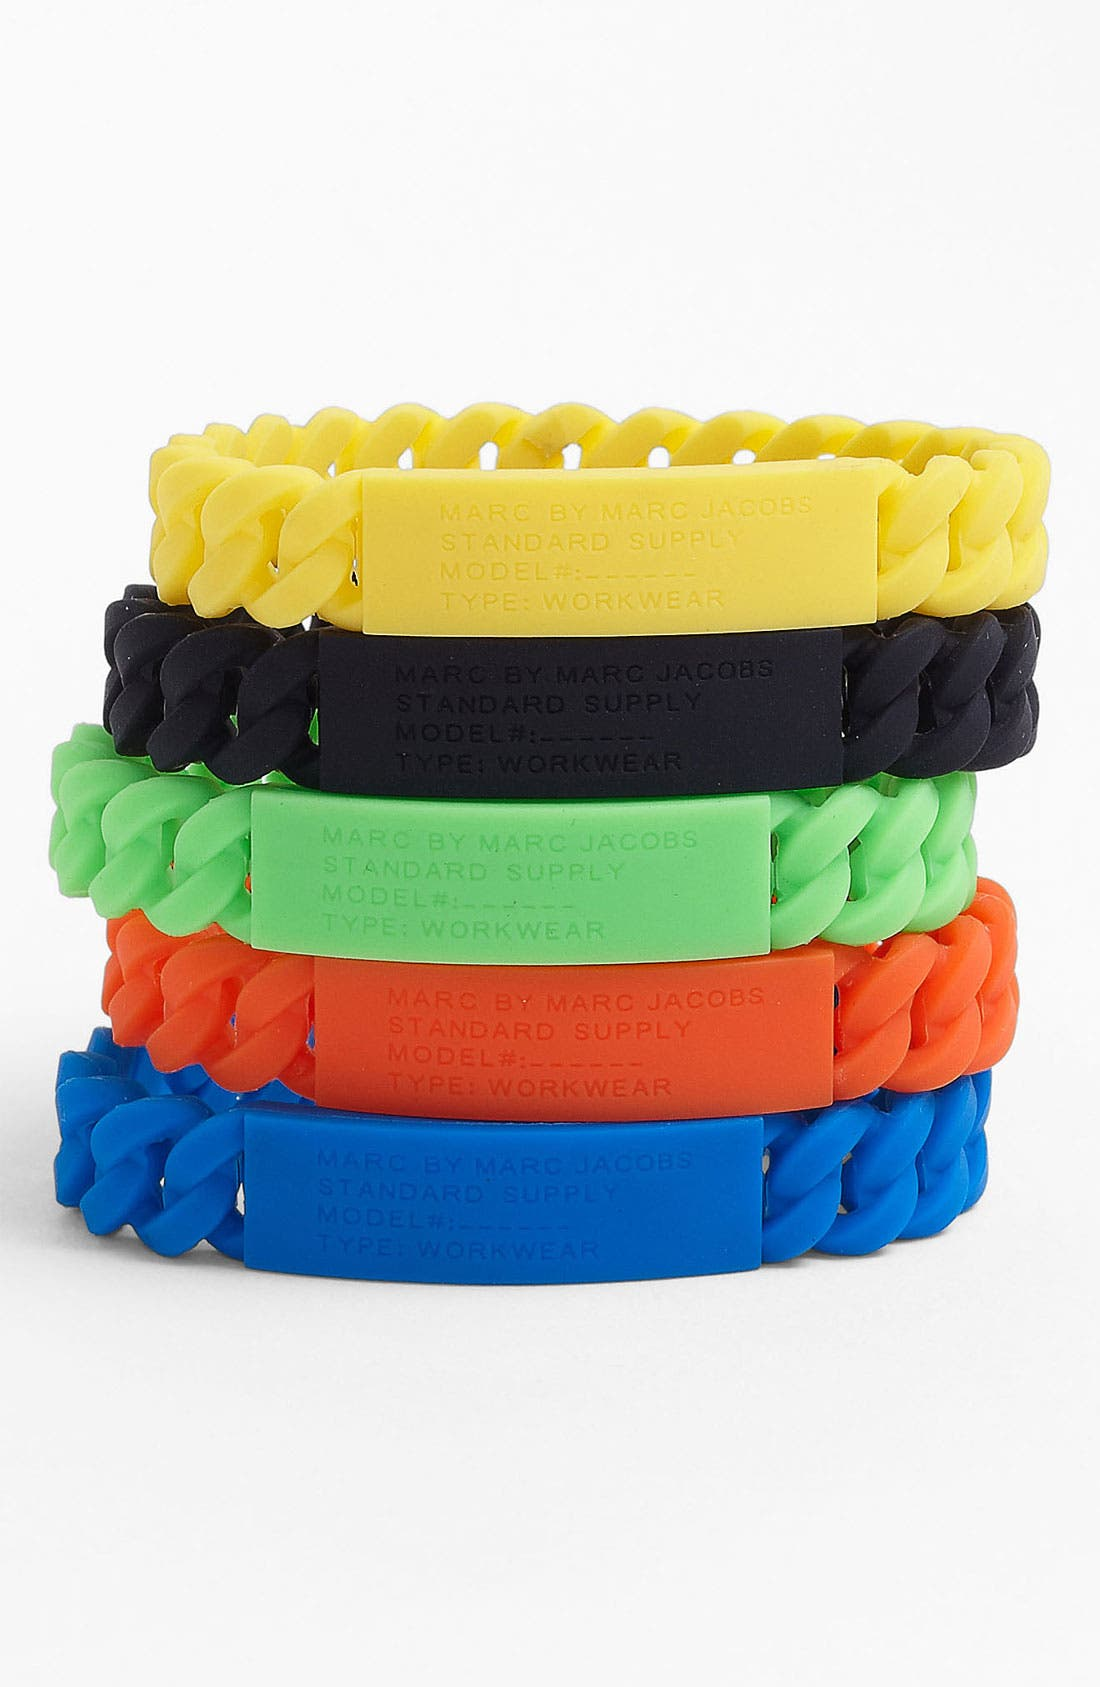 Alternate Image 1 Selected - MARC BY MARC JACOBS 'Rubber Standard Supply' Stretch ID Bracelet